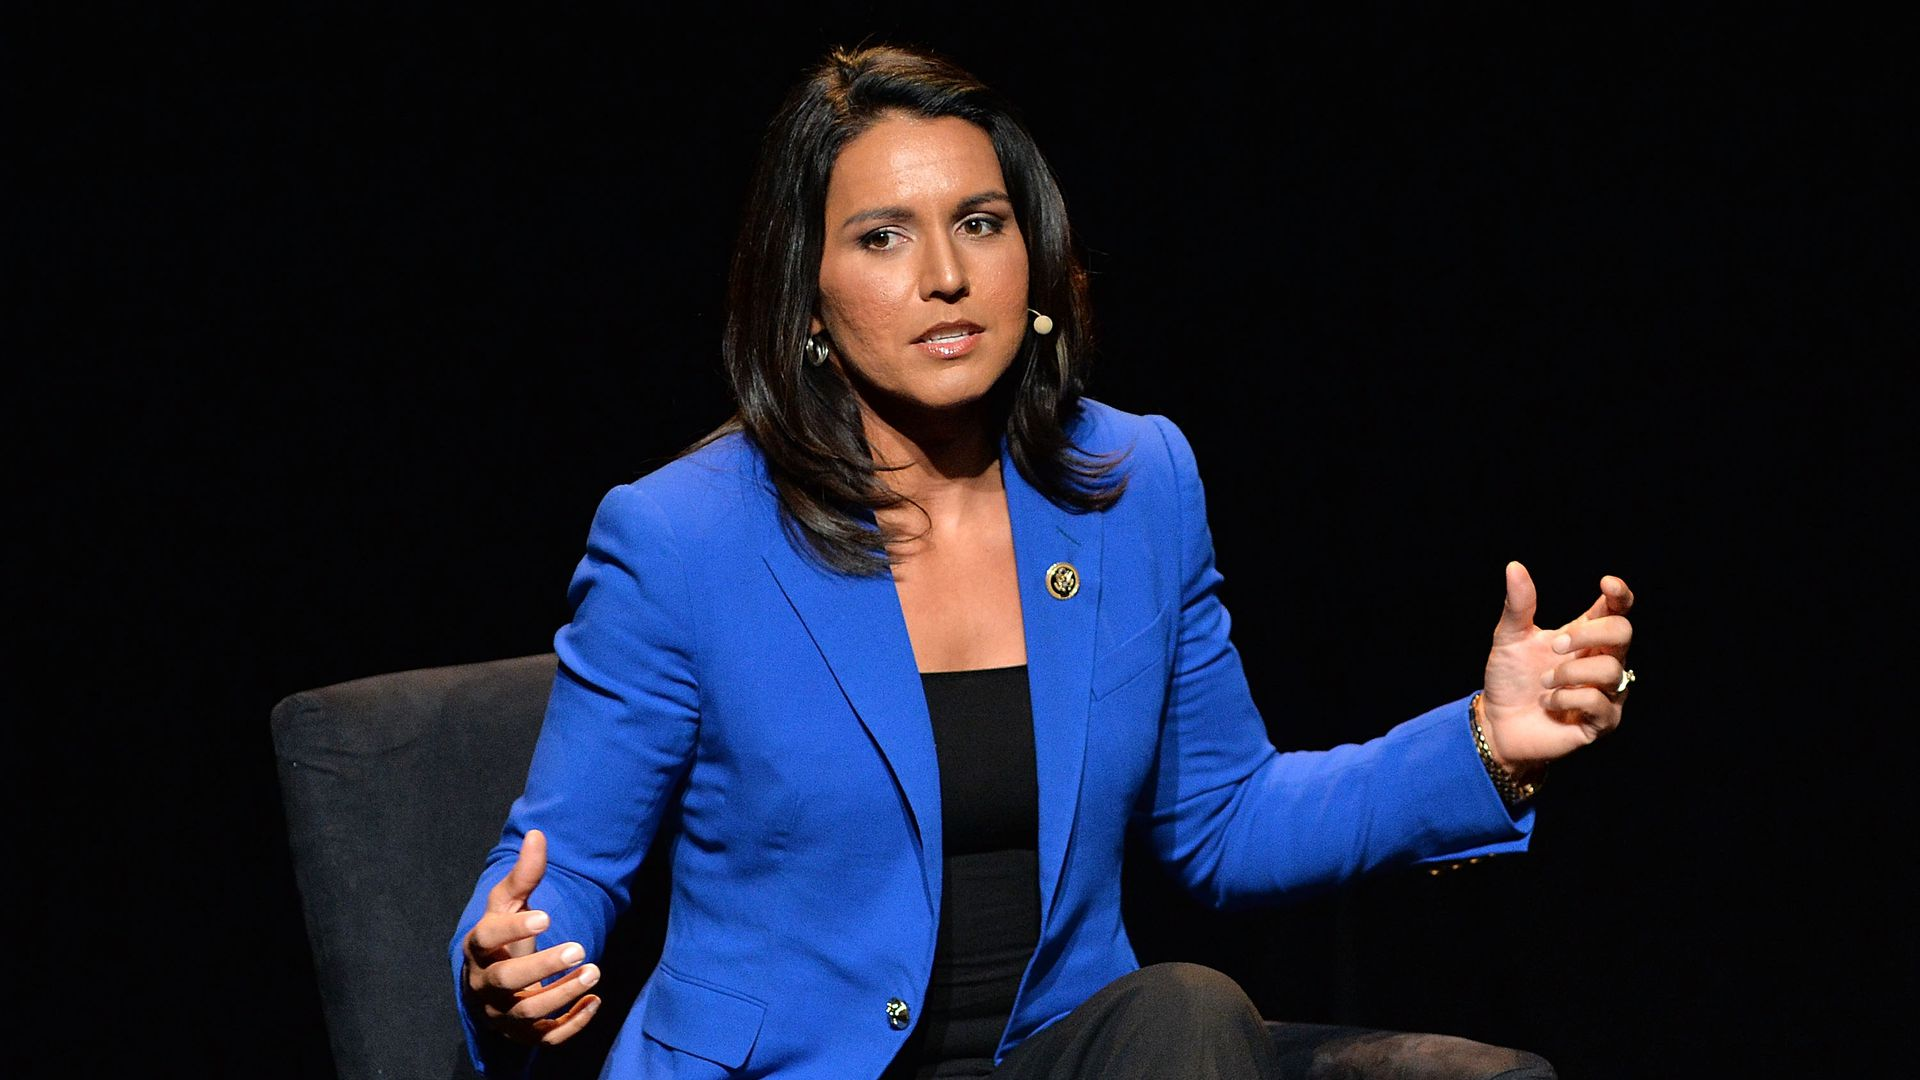 Tulsi Gabbard says evidence is needed before she can comment on whether Syria's president is a war criminal.